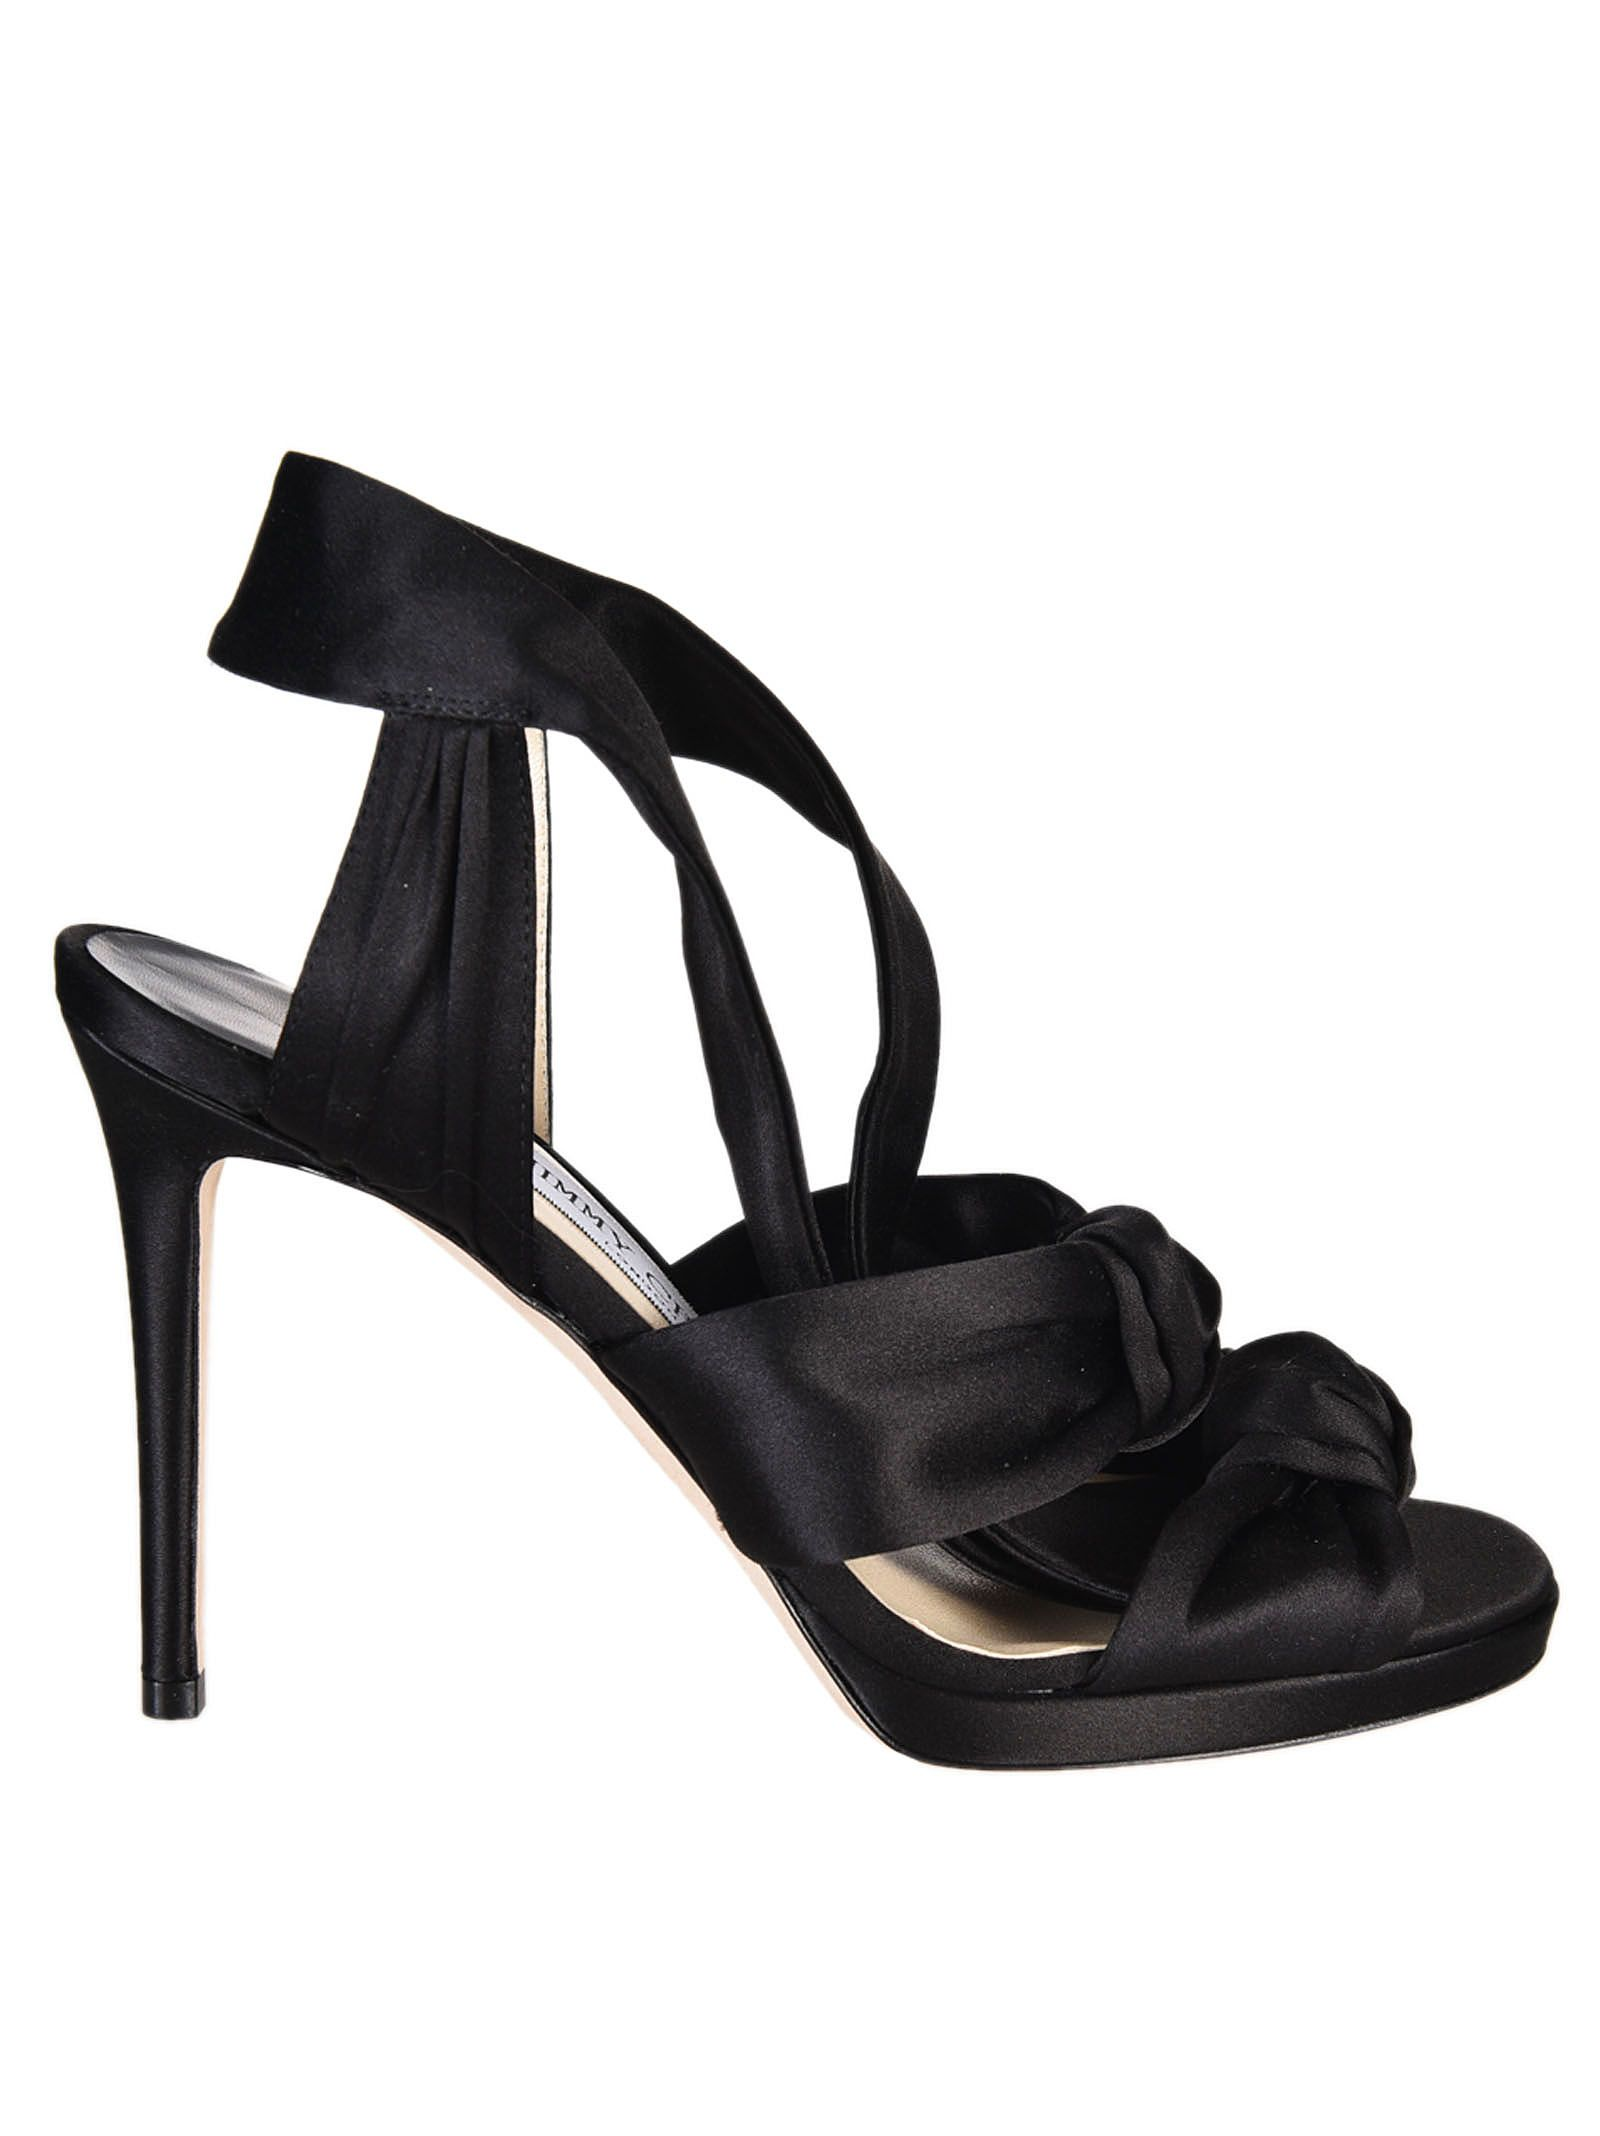 Jimmy Choo Kris 100 Sandals